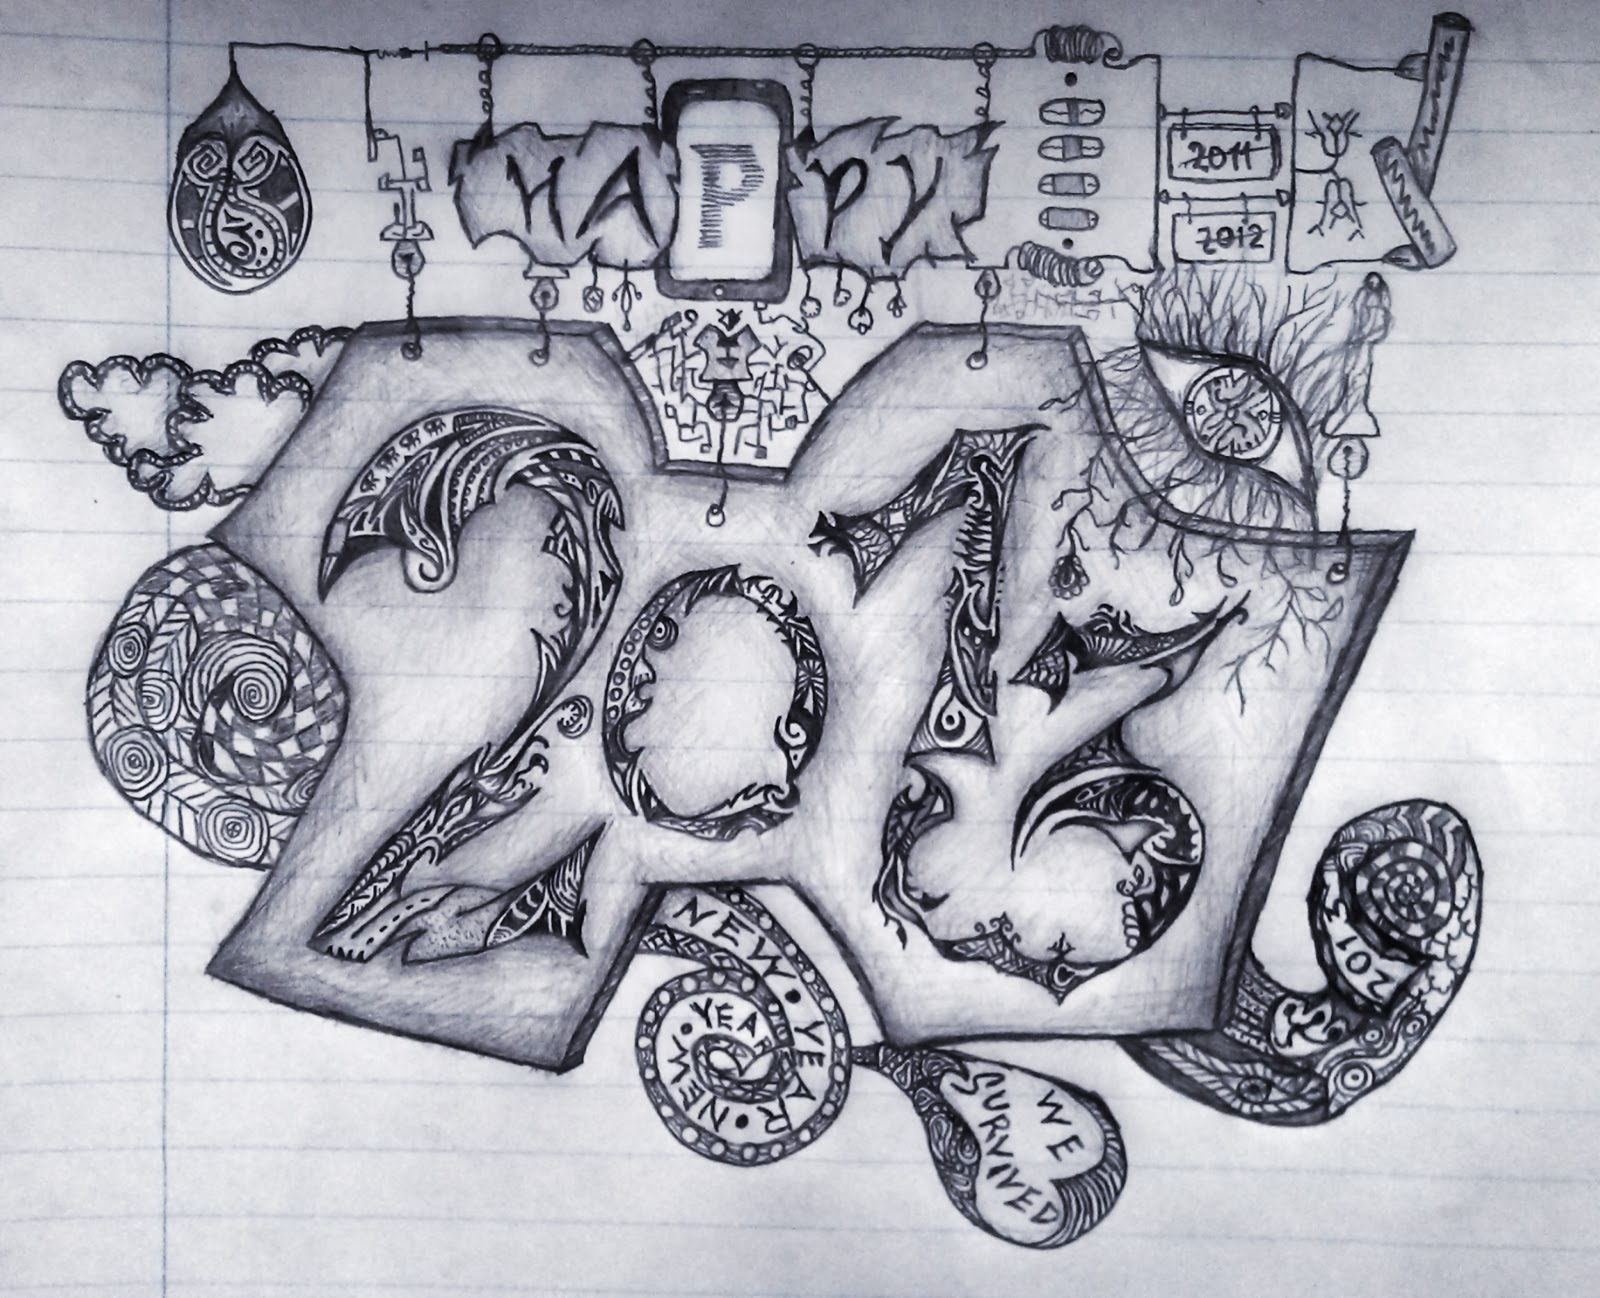 Happy New Year 2013 Greetings Wishes | H4xOrin\' T3h WOrLd